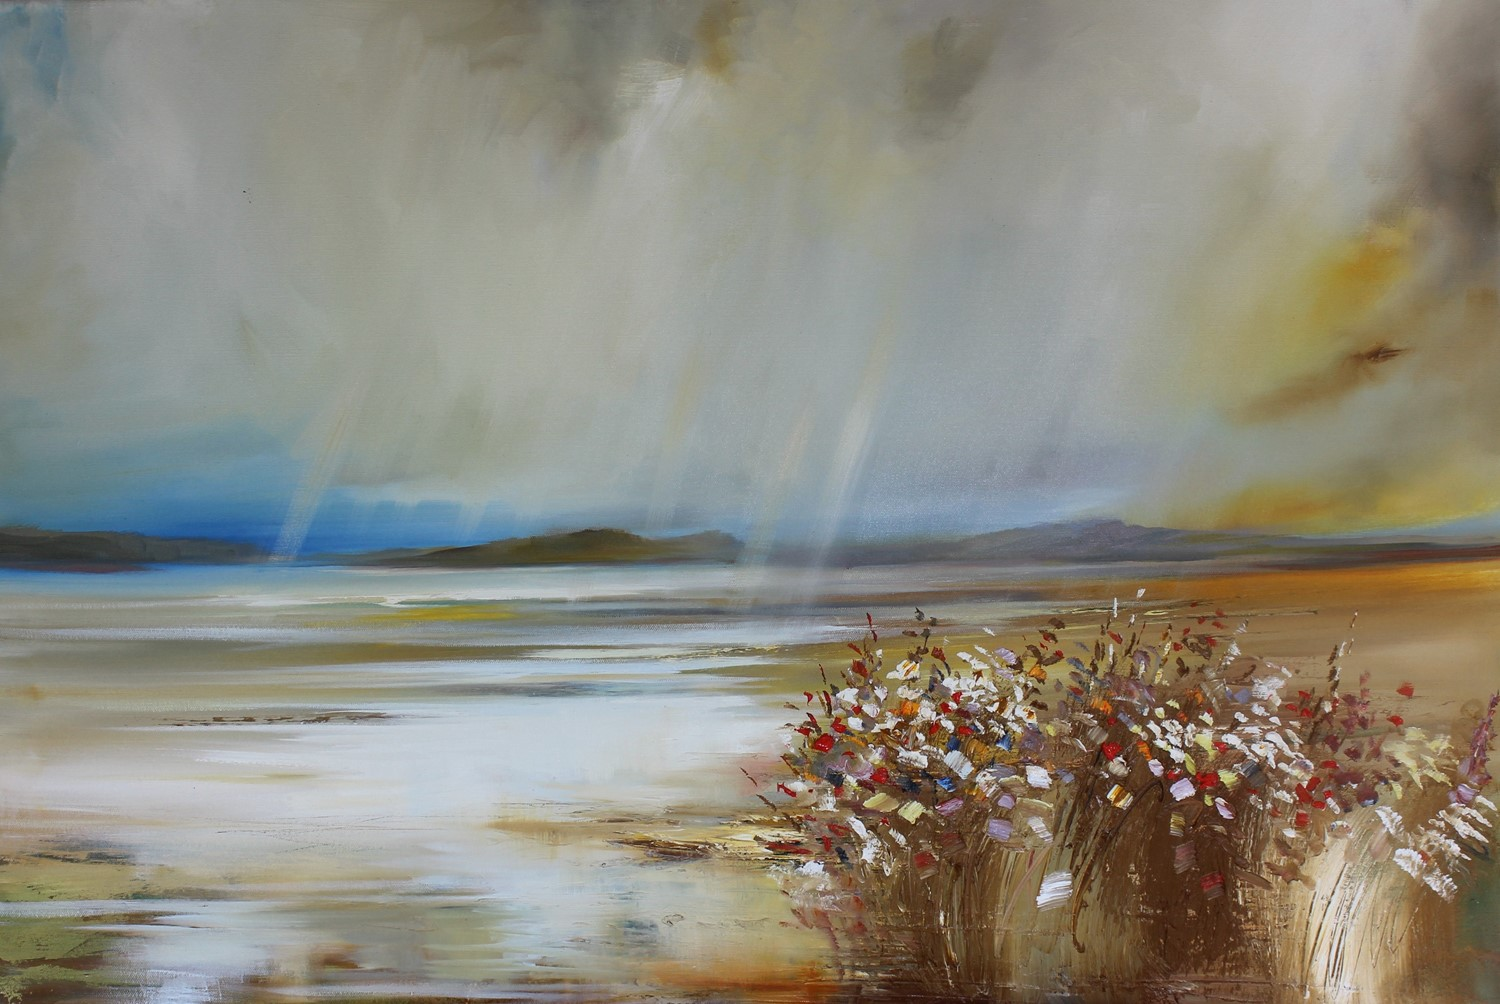 'The Scottish Weather' by artist Rosanne Barr